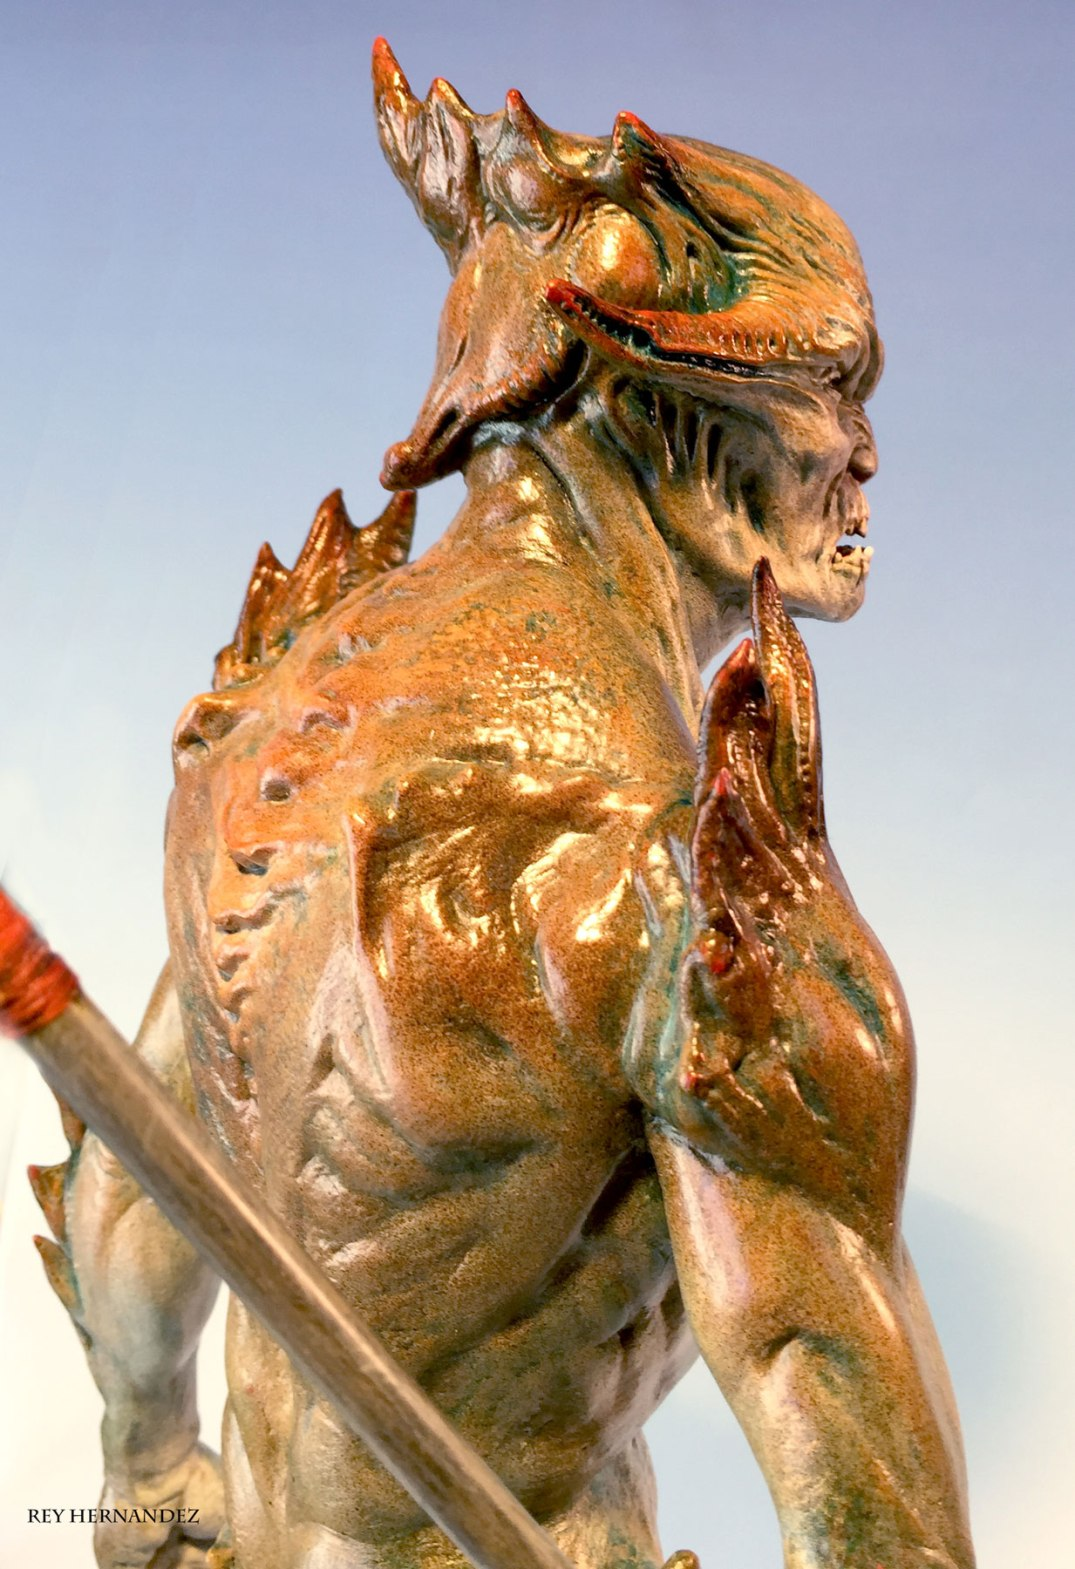 rey_hernandez_zbrush_sculpt_water_demon_king_003